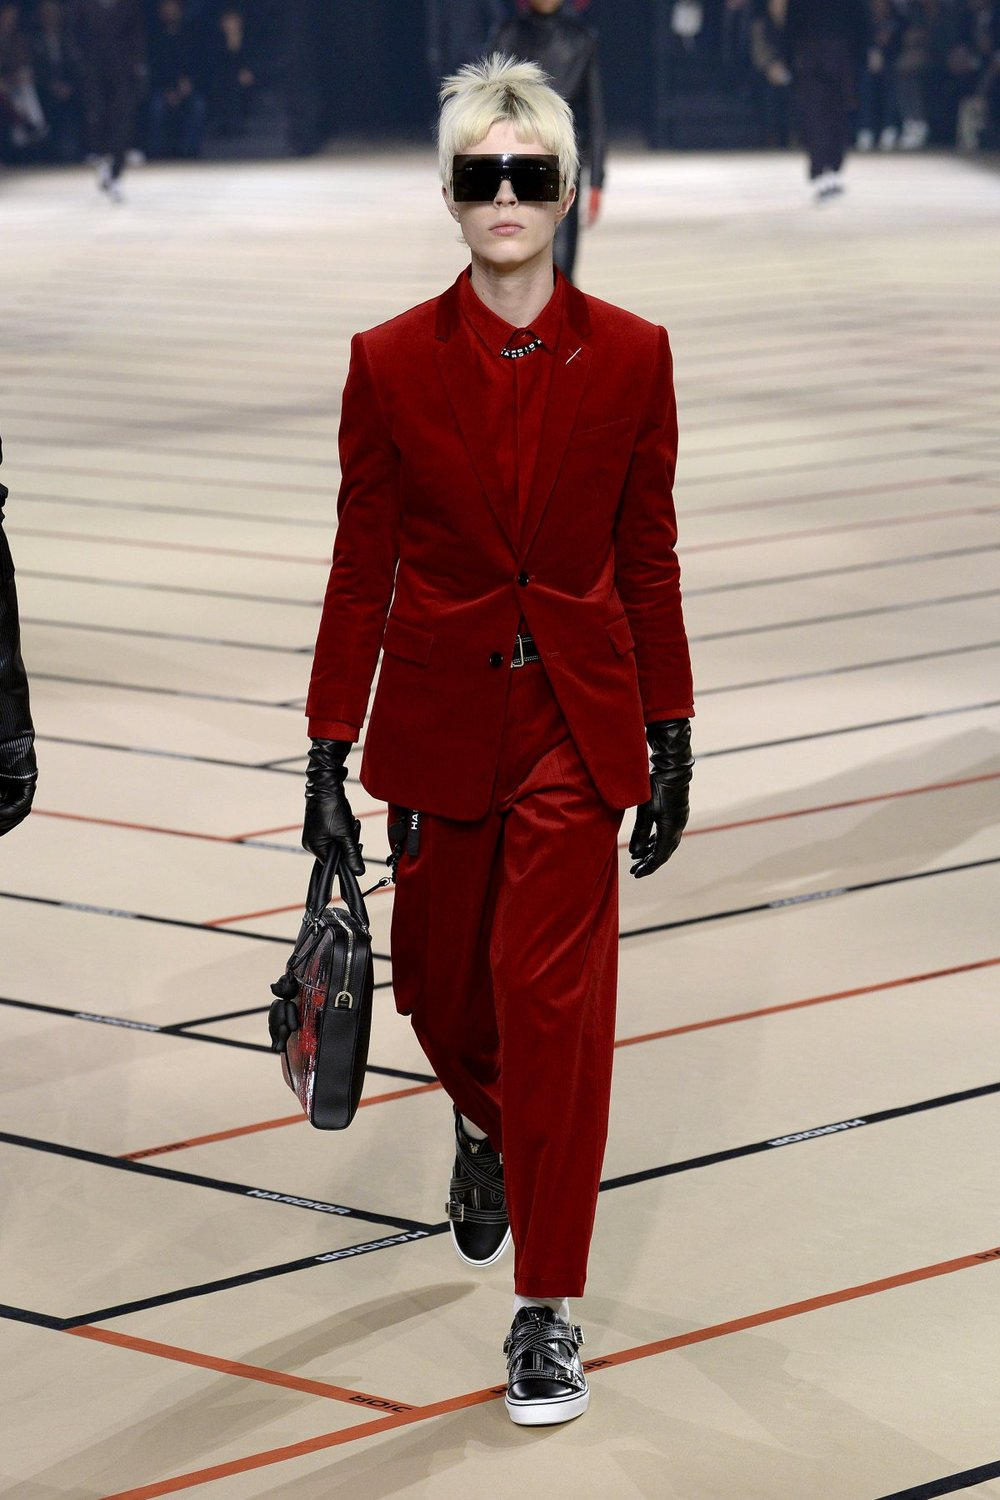 dior_homme_look_8_2017_aw_mens.jpeg